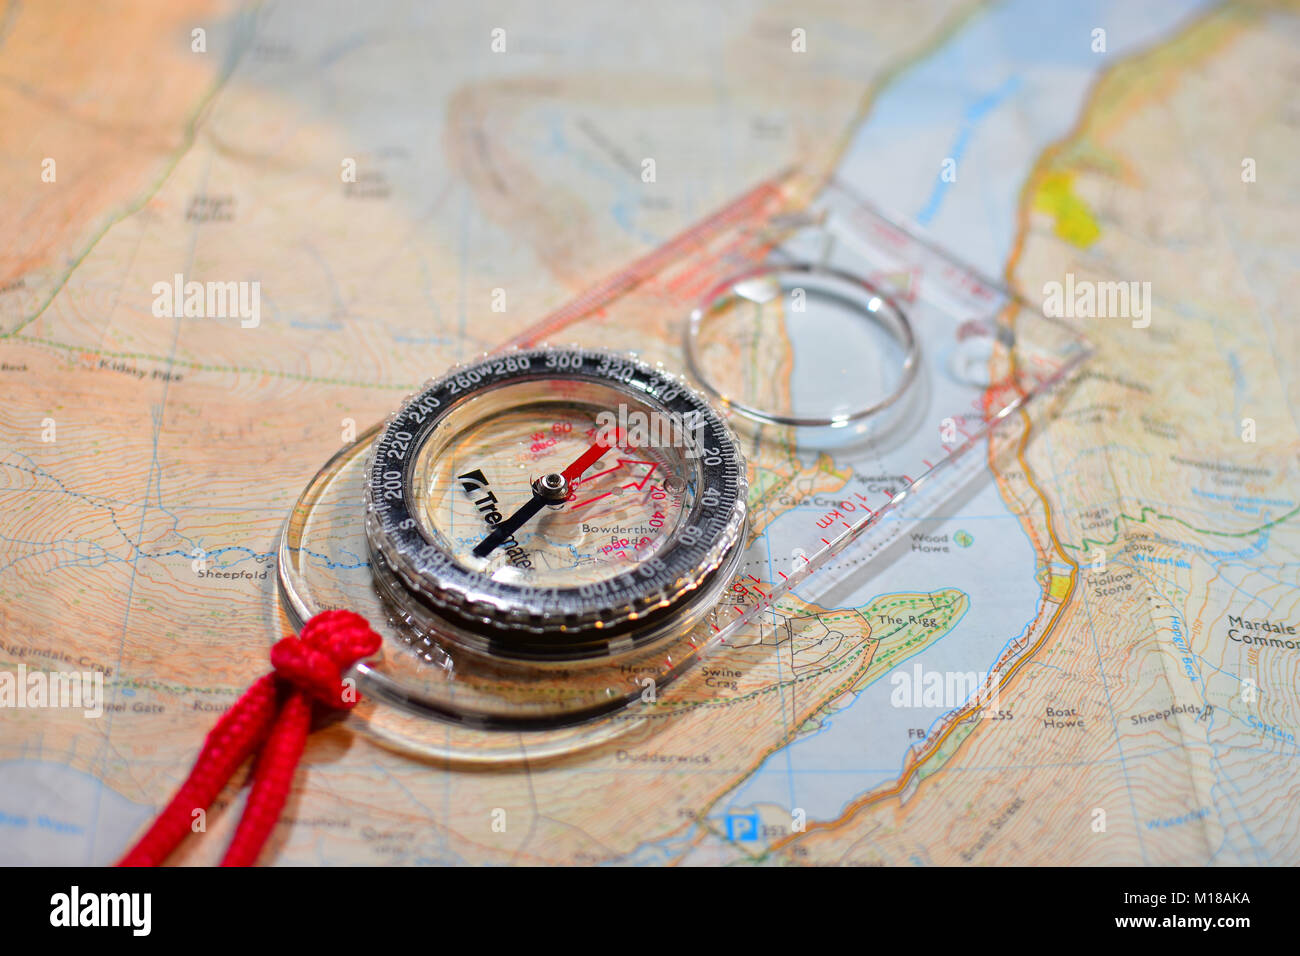 Map reading Compass and Ordinance Survey Map - Stock Image